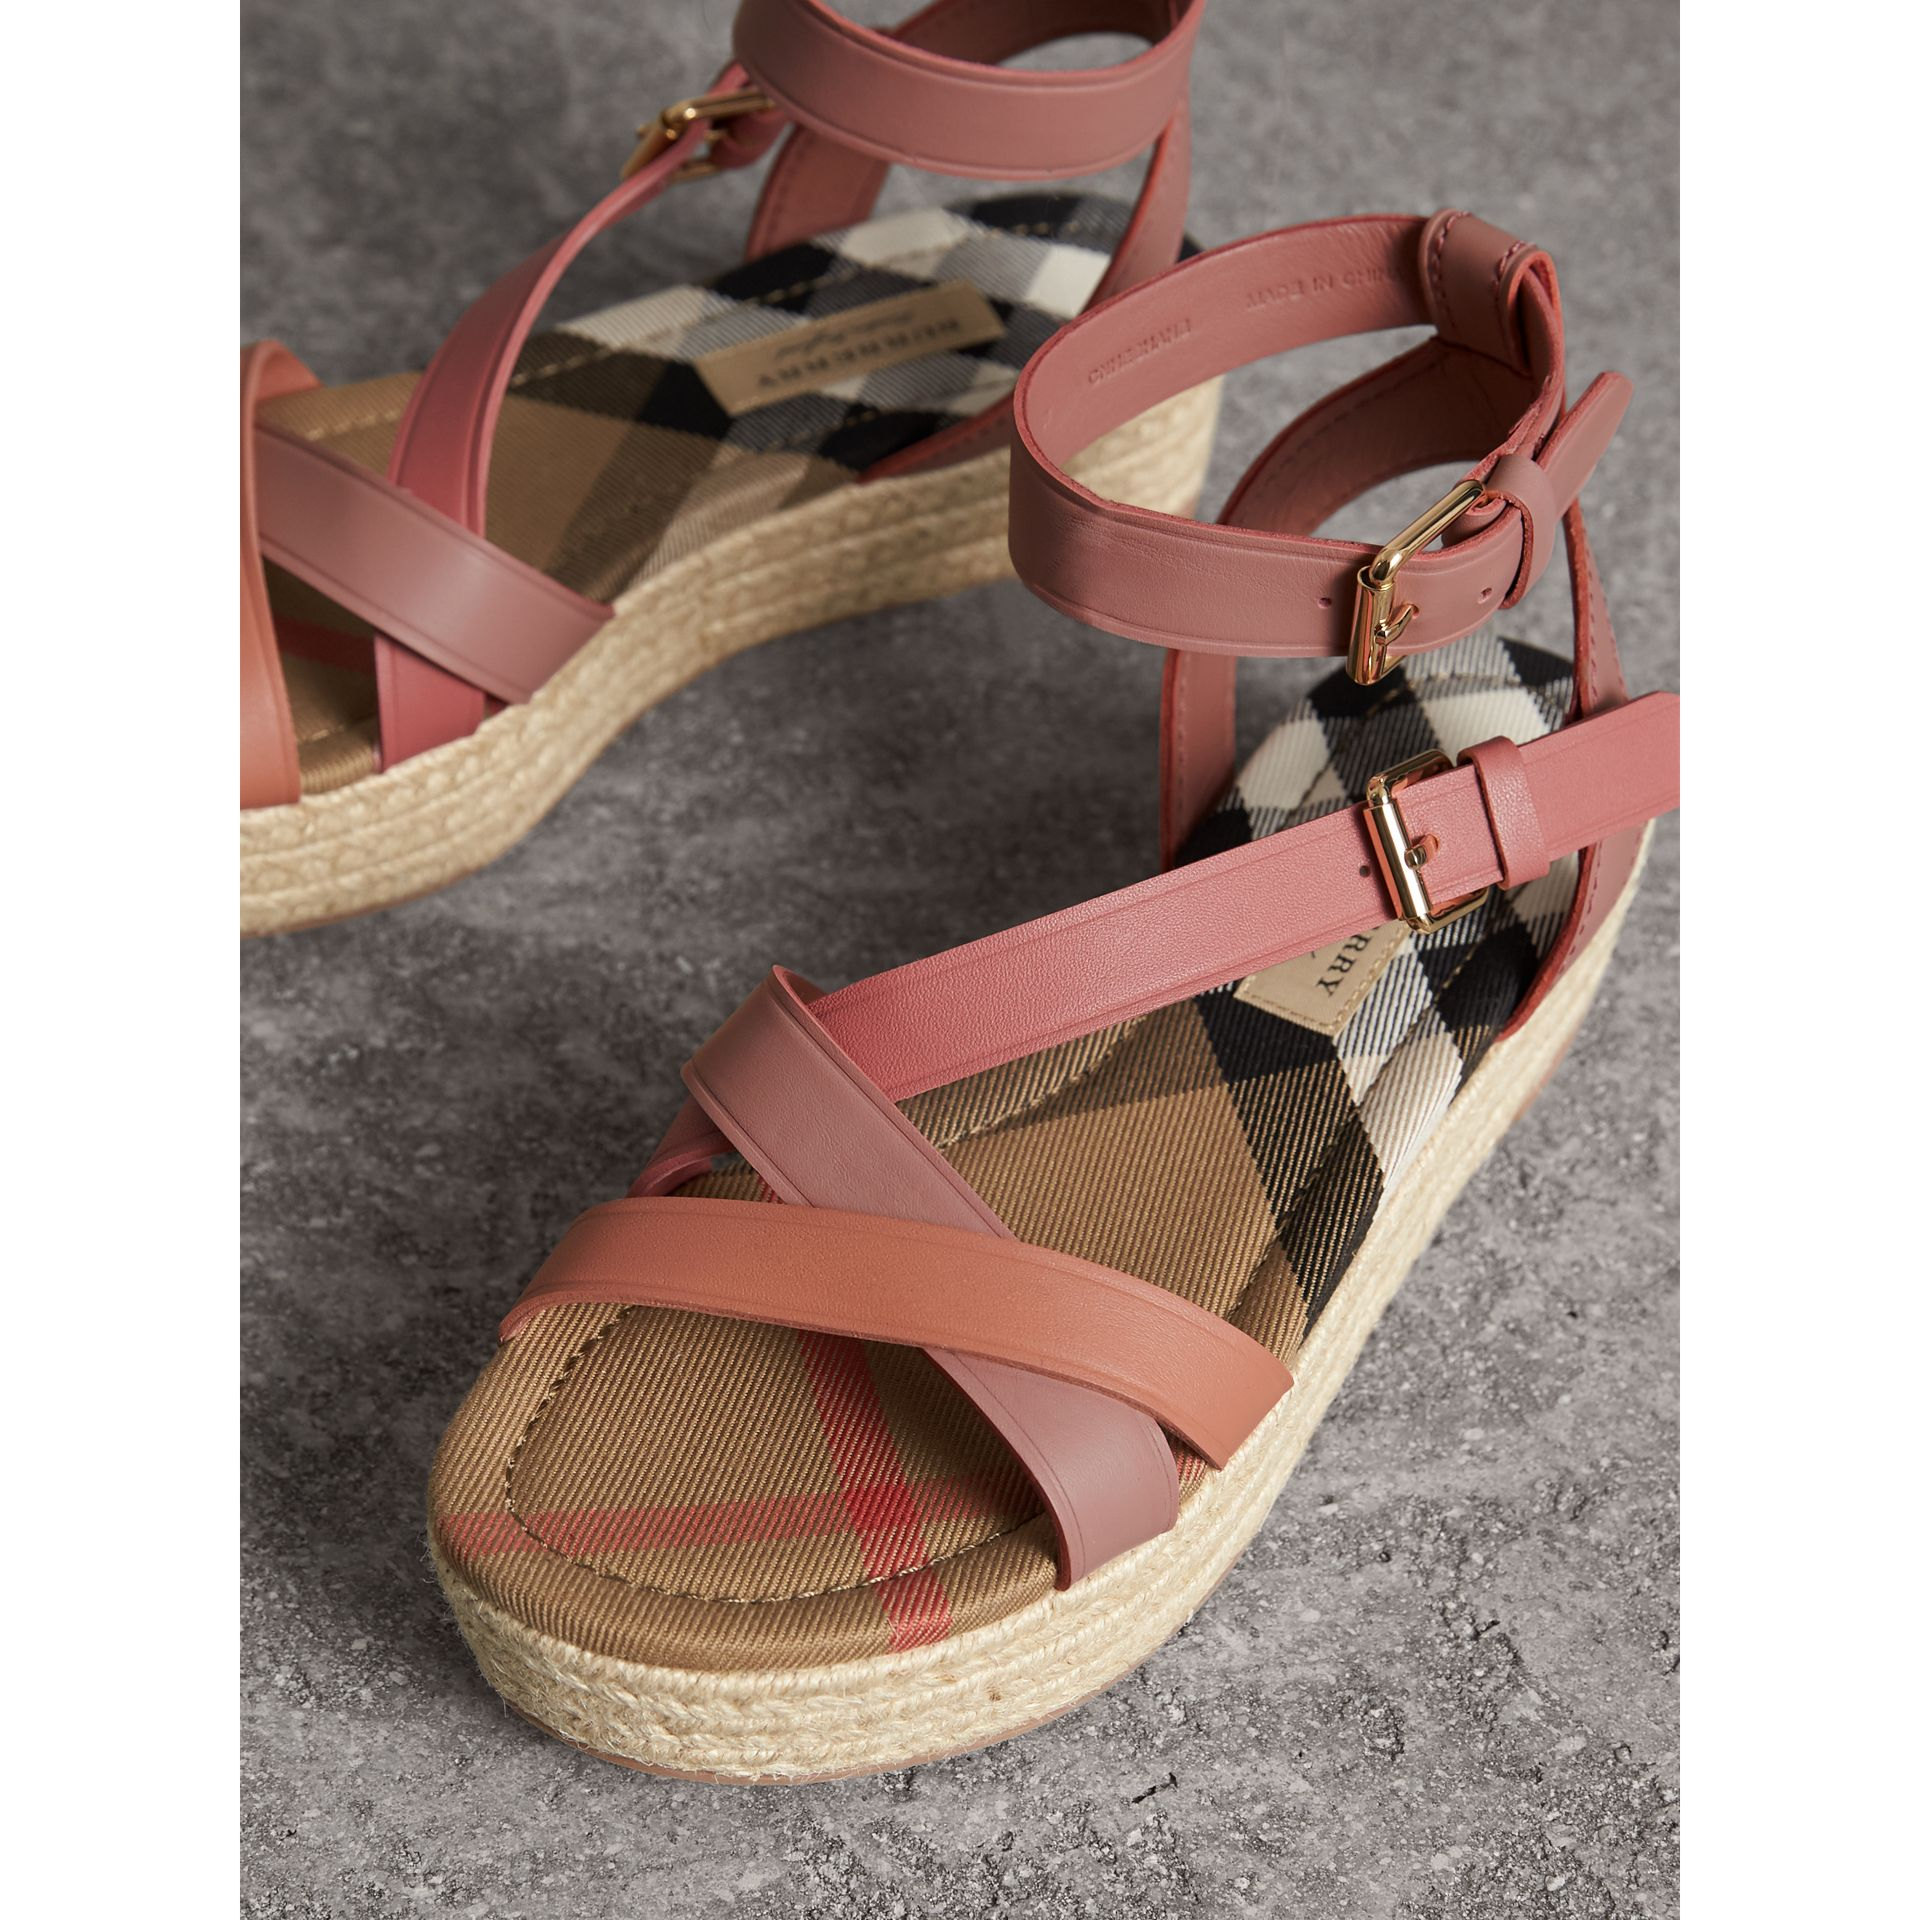 Two-tone Leather Espadrille Sandals in Dusty Pink - Women | Burberry - gallery image 4